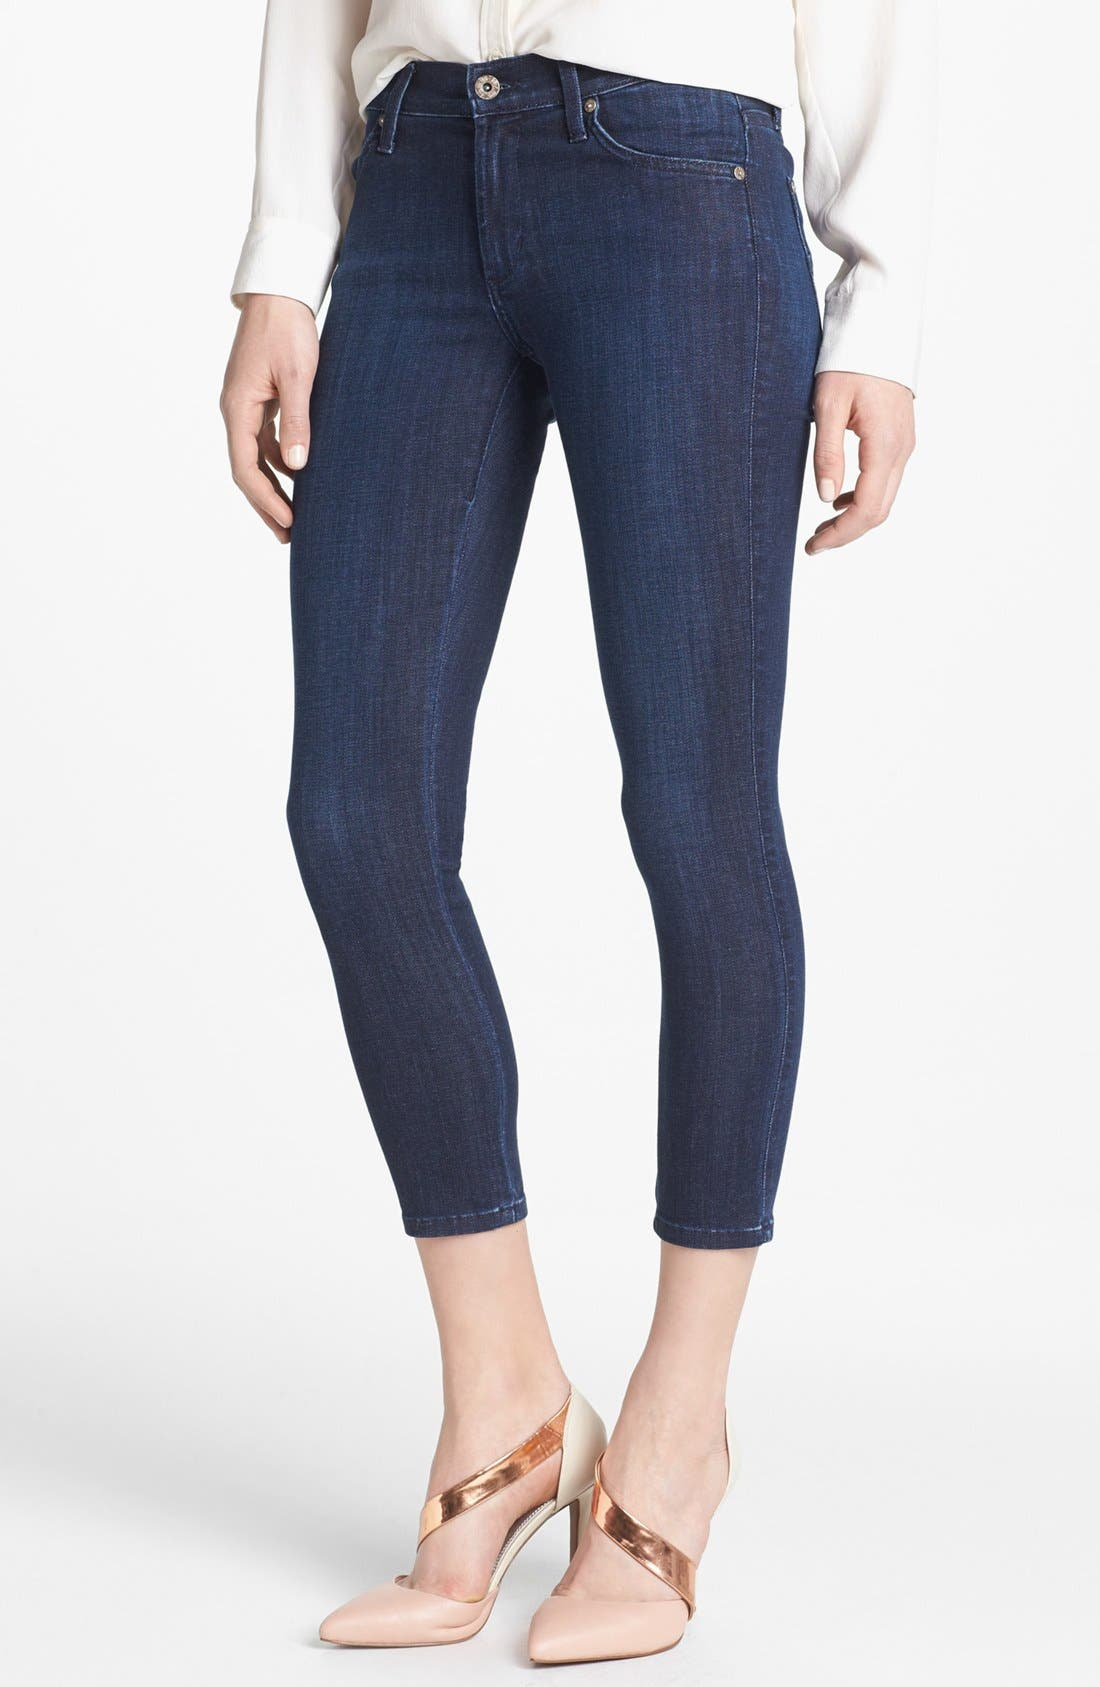 Main Image - James Jeans Crop Skinny Jeans (Petite) (Online Only)